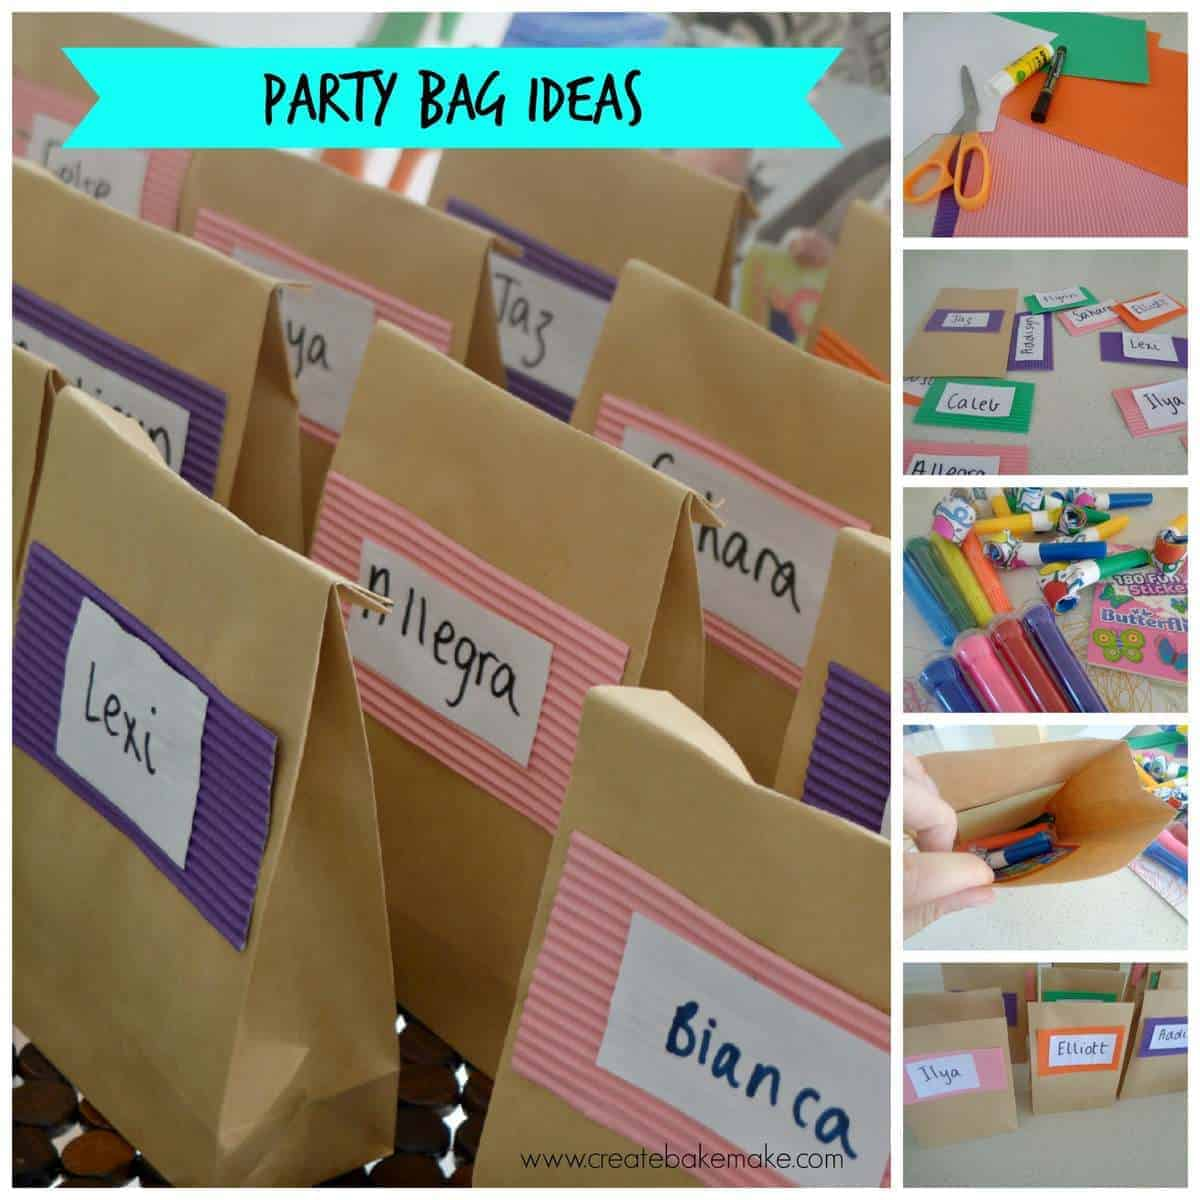 Make your own Party Bags!